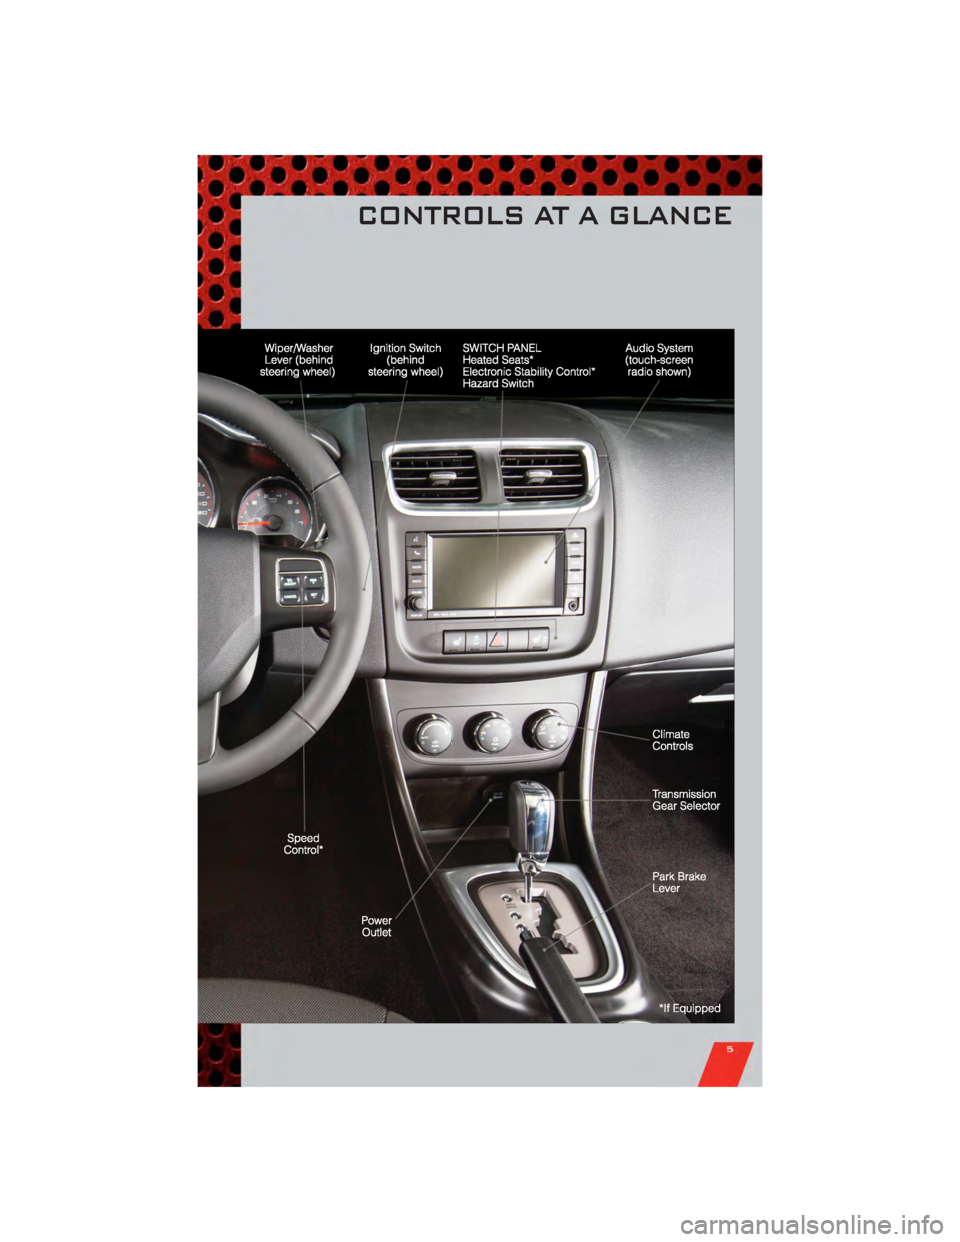 DODGE AVENGER 2011 2.G User Guide CONTROLS AT A GLANCE 5